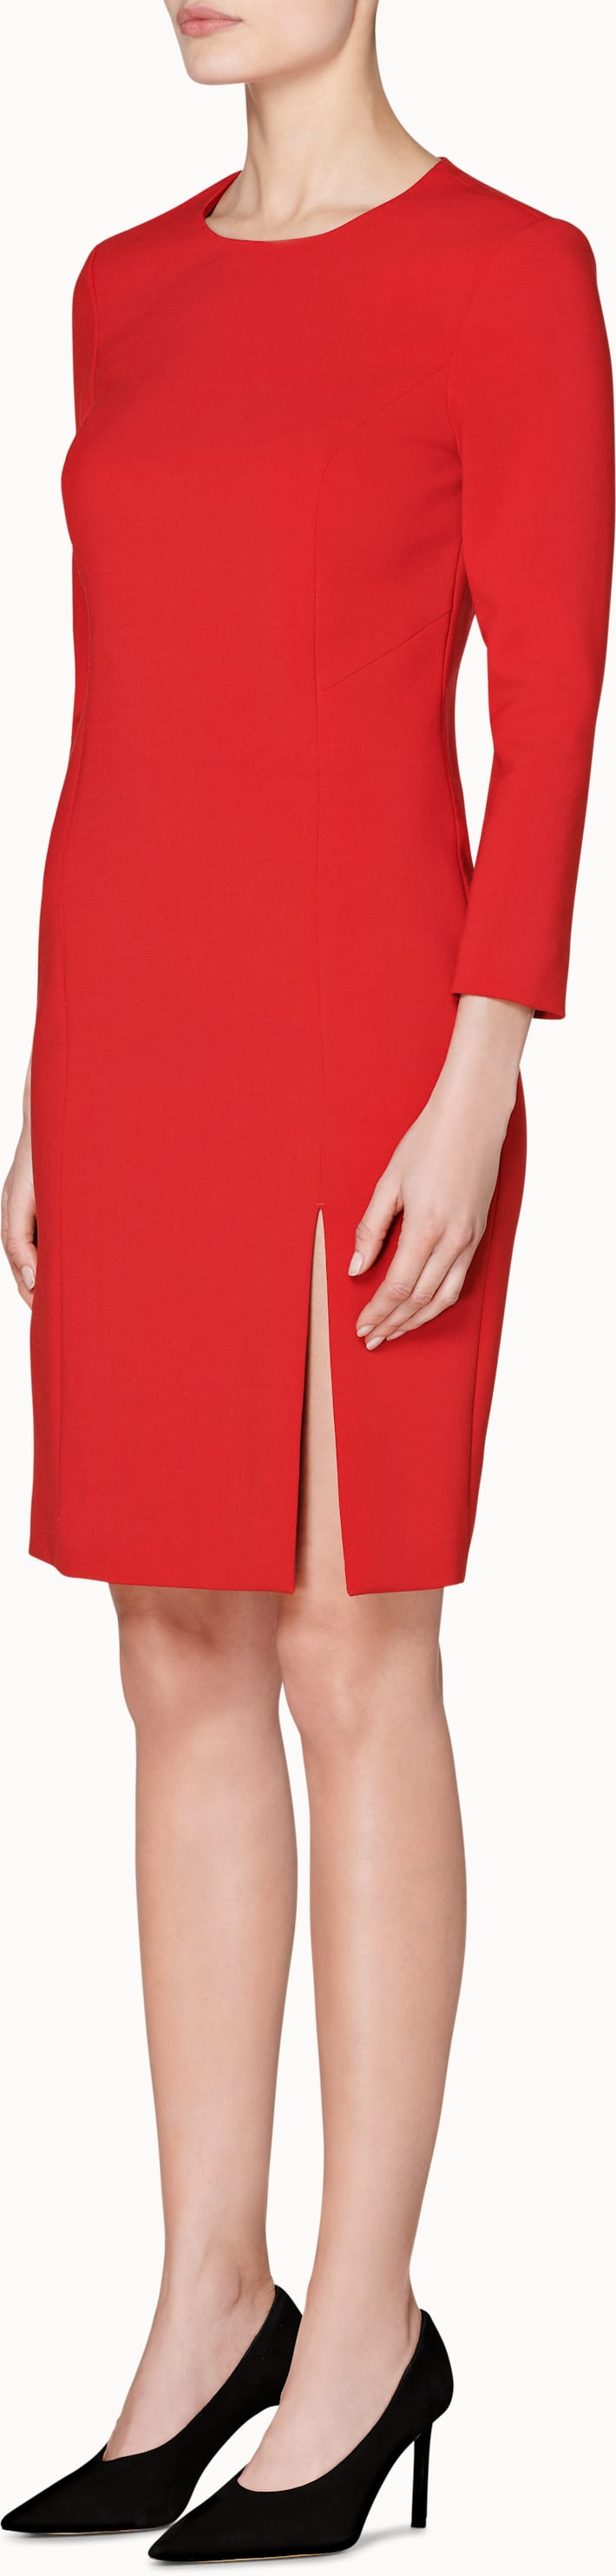 Red Plain Dress